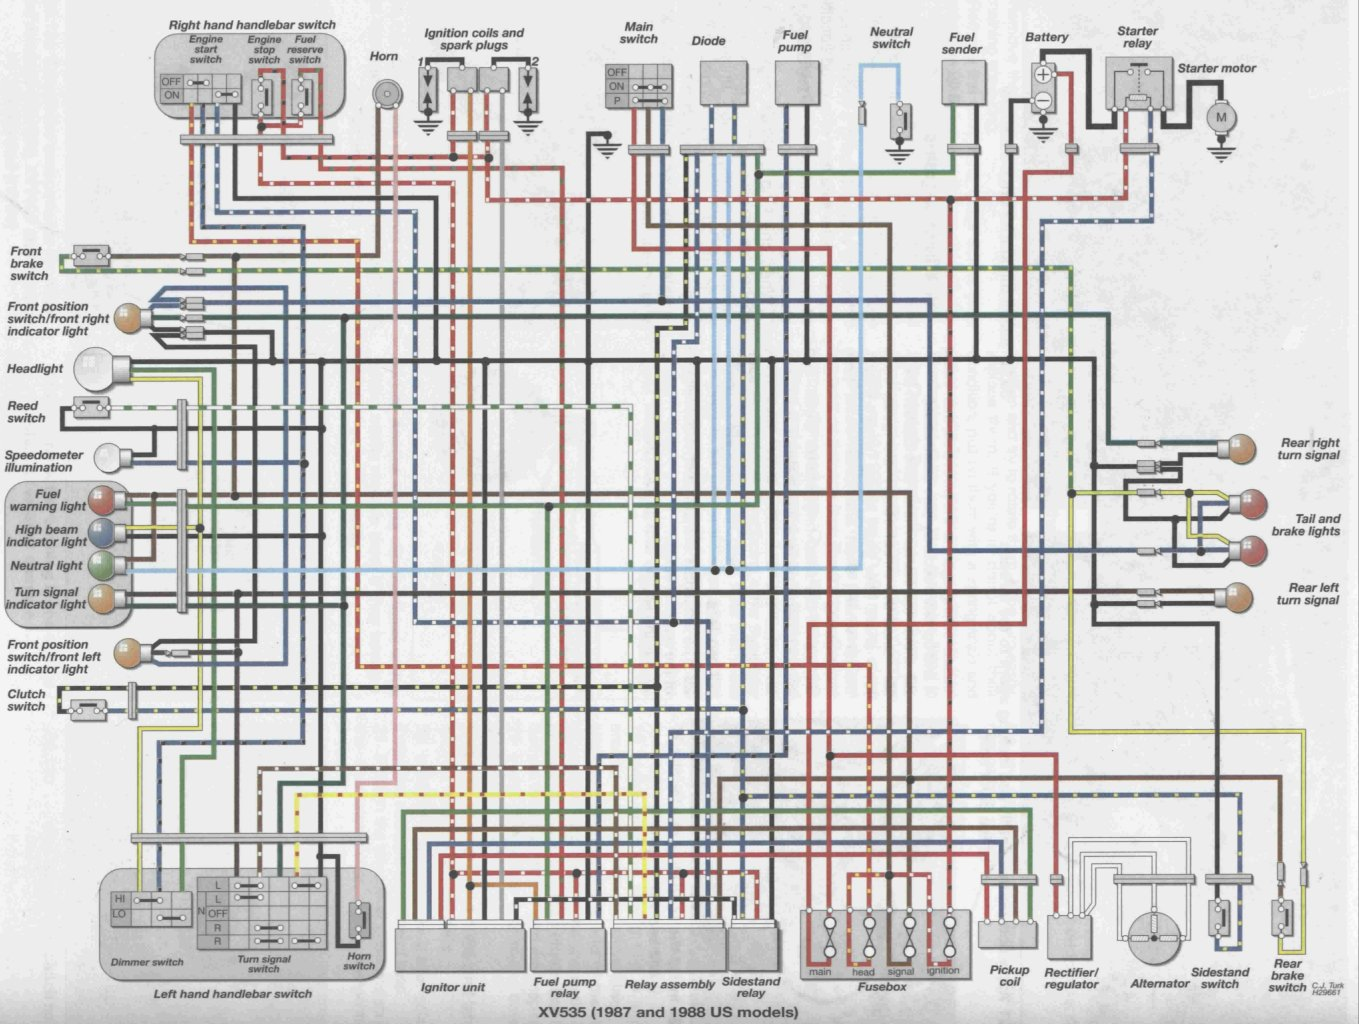 Honda Vt500c Wiring Diagram Another Blog About 1996 Shadow 1984 Color Diagrams Data Base Rh Alfrescosolutions Co